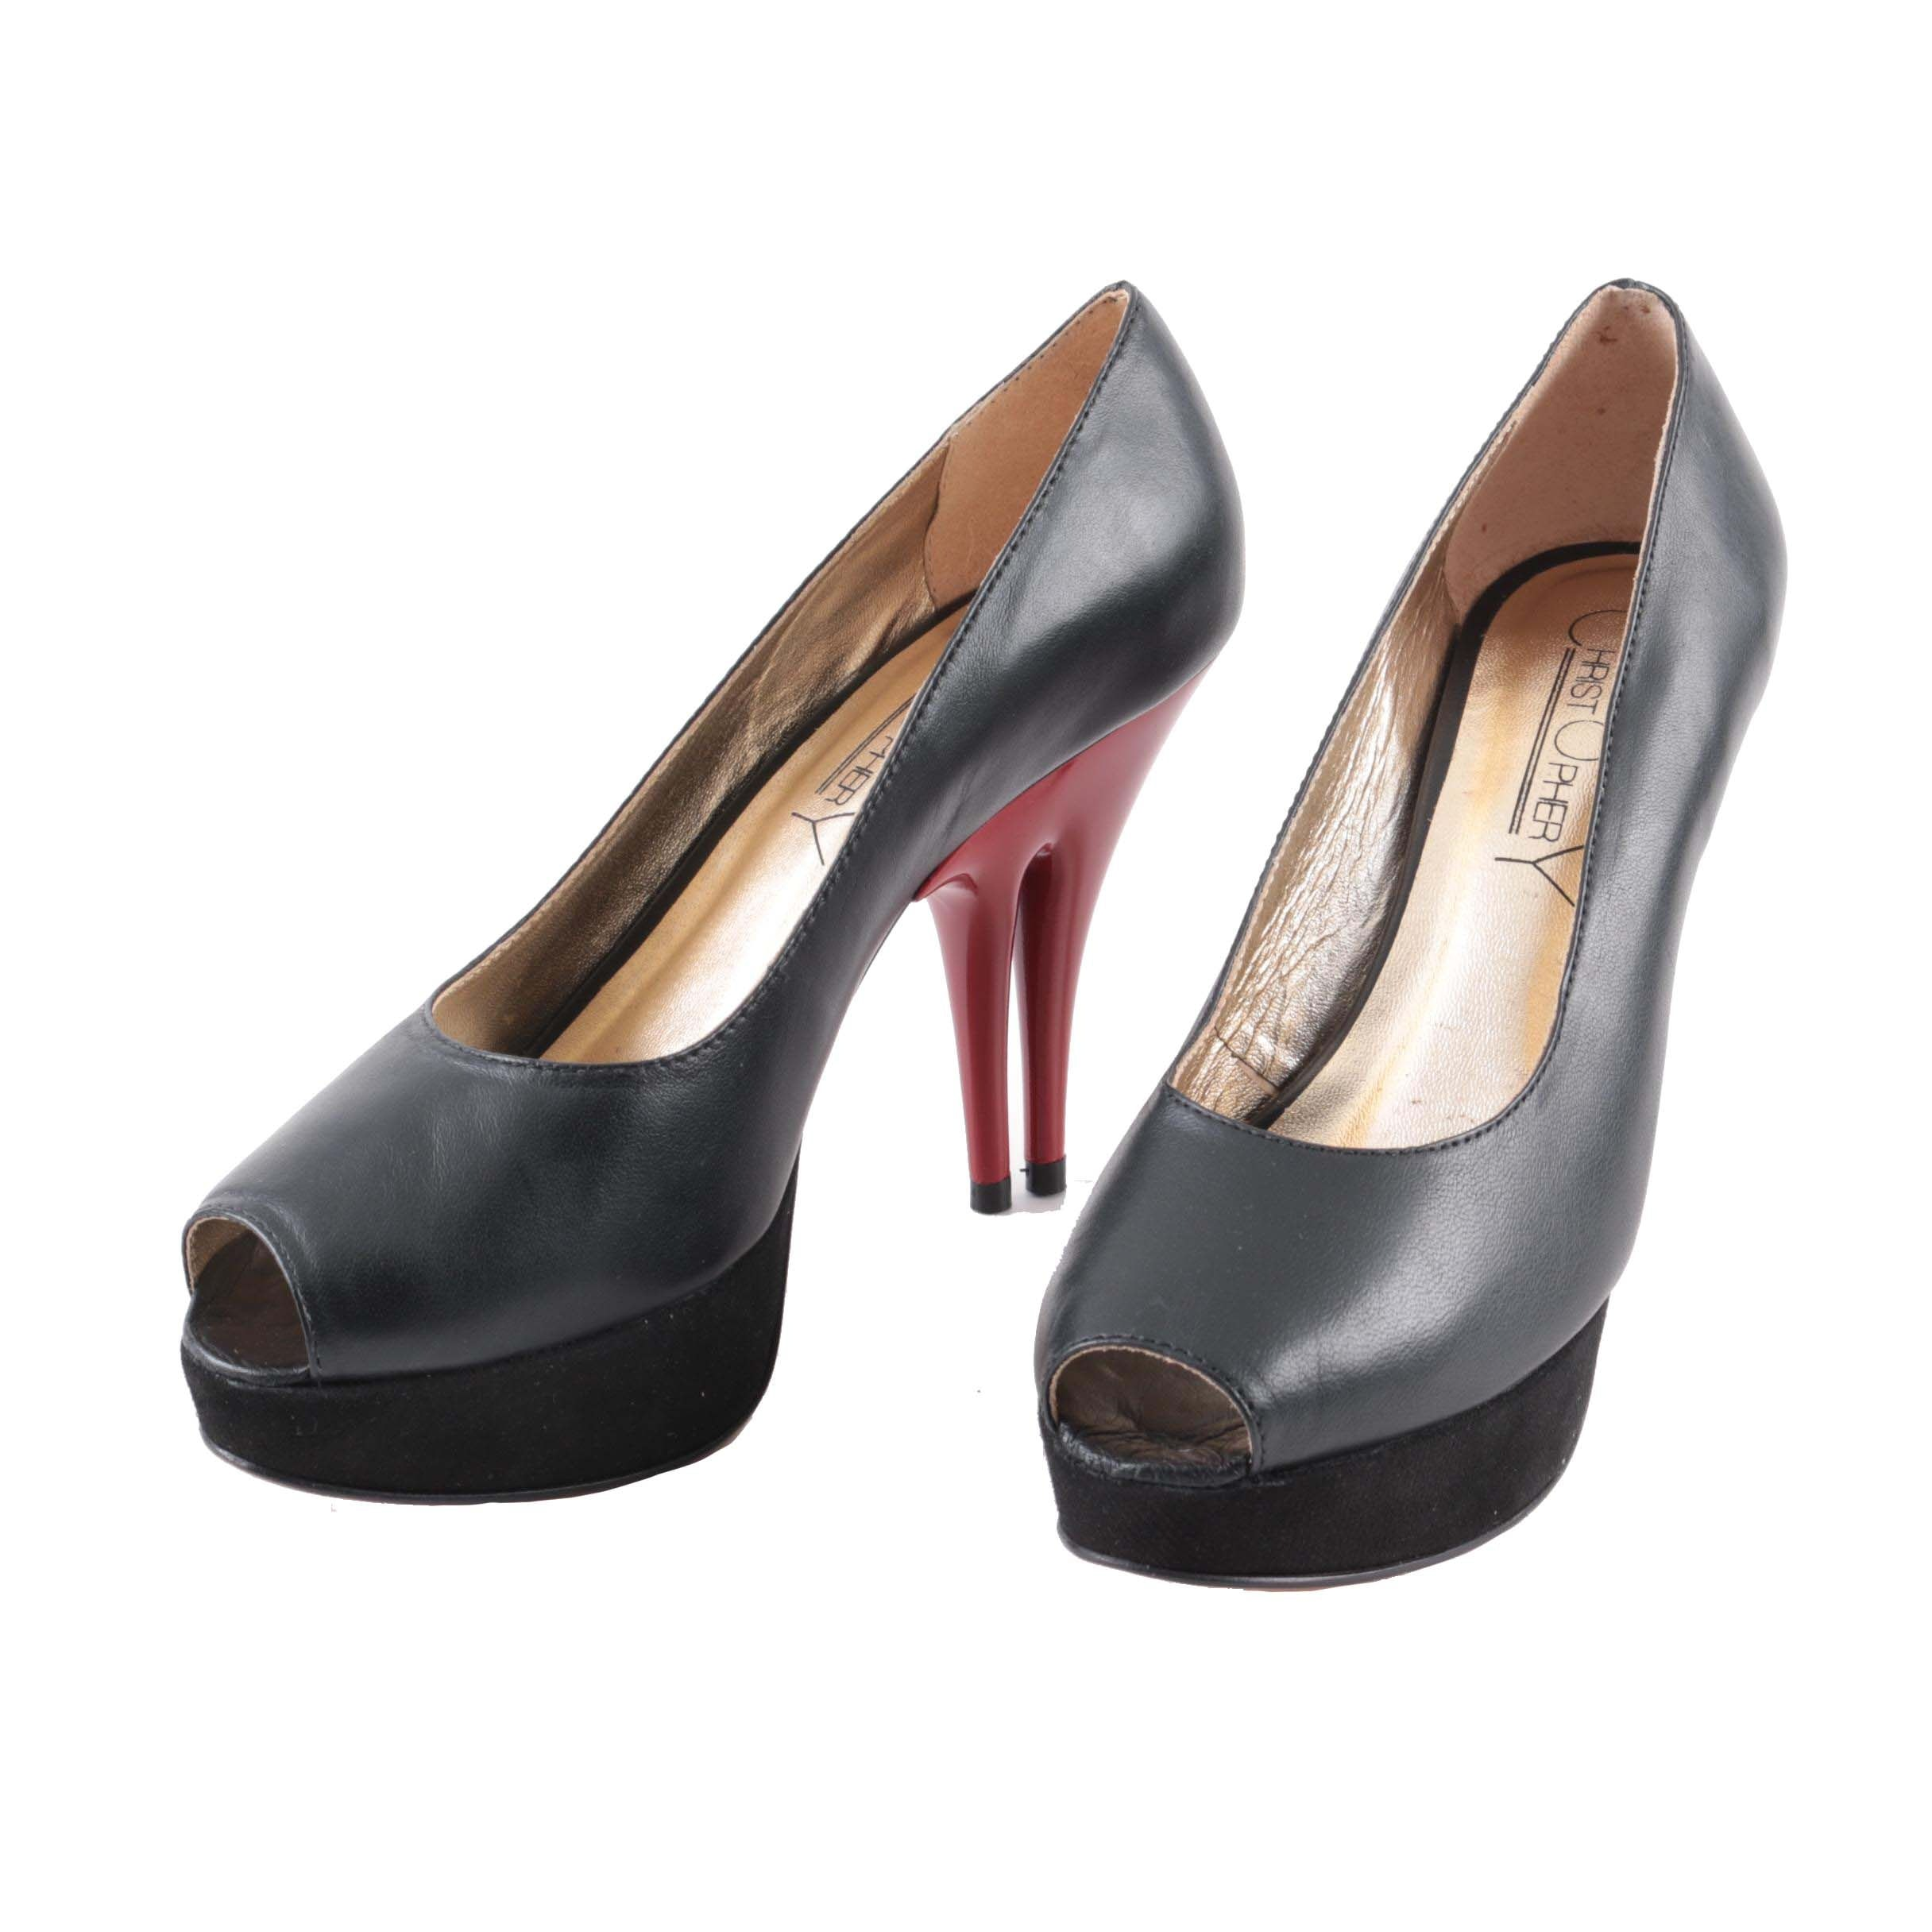 Christopher Coy Dual Heeled Stilettos in Black Leather